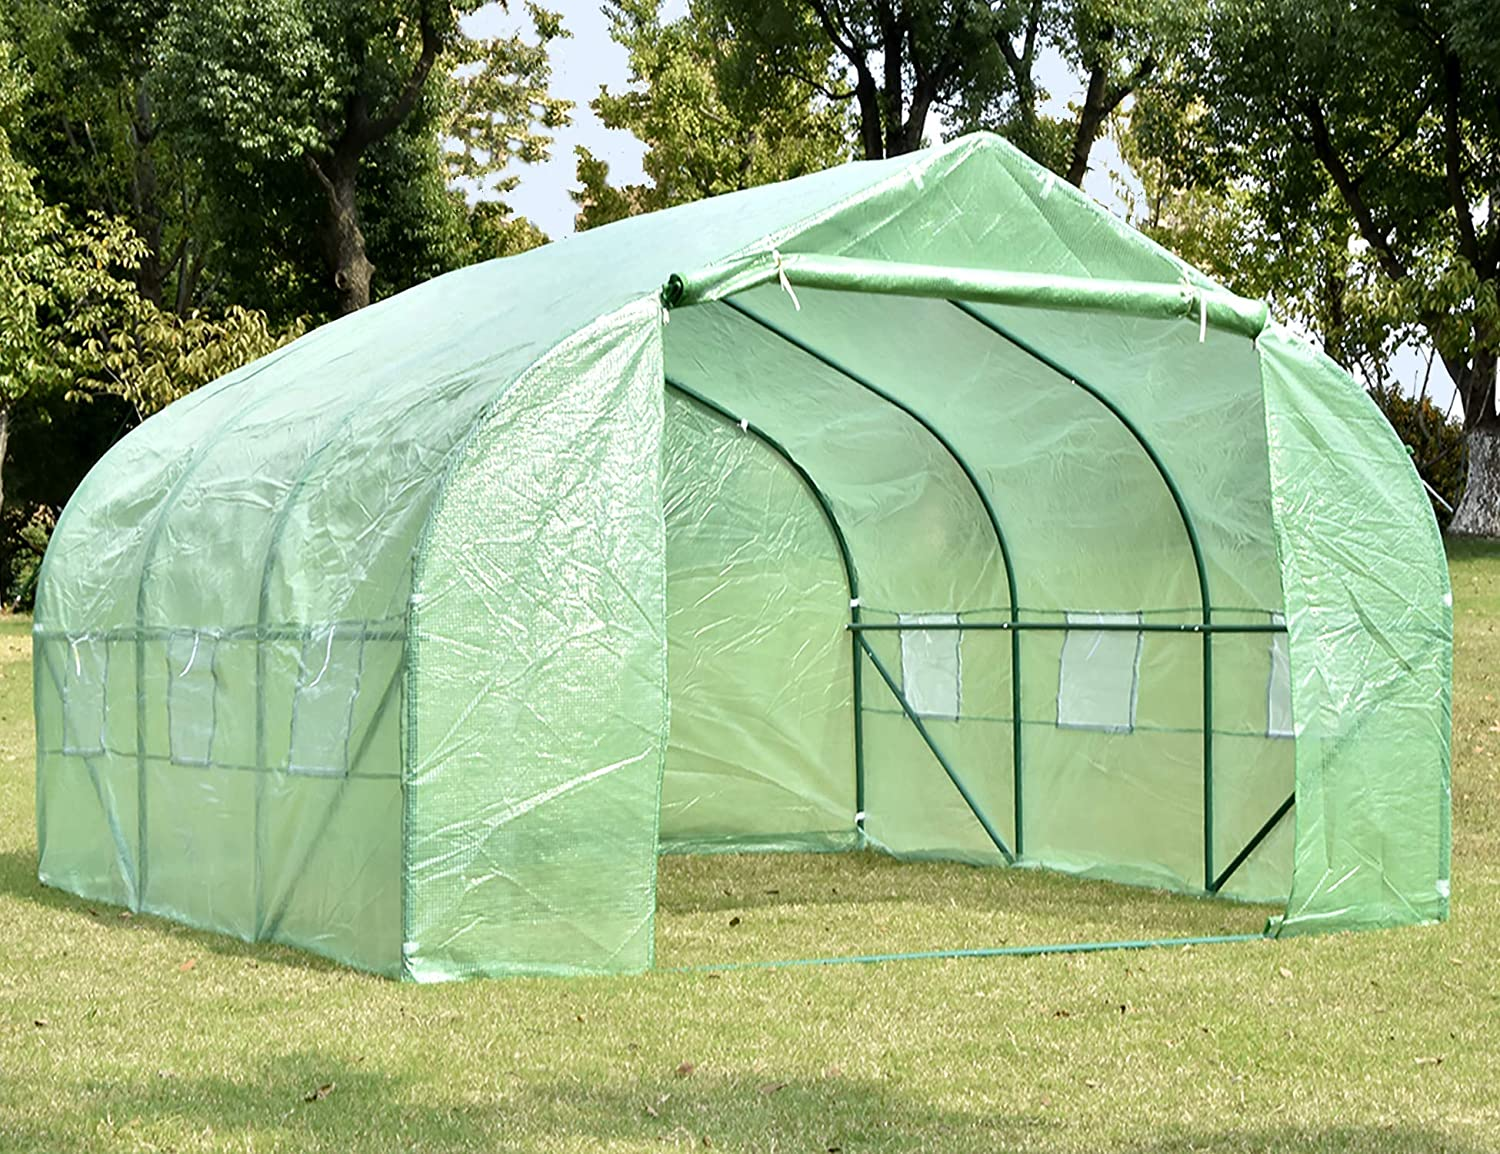 NSdirect Green House 12 x10 x7 ,Heavy Duty Walk in Outdoor Plant Gardening Greenhouse Portable Plant Hot House with Double Zipper,Green